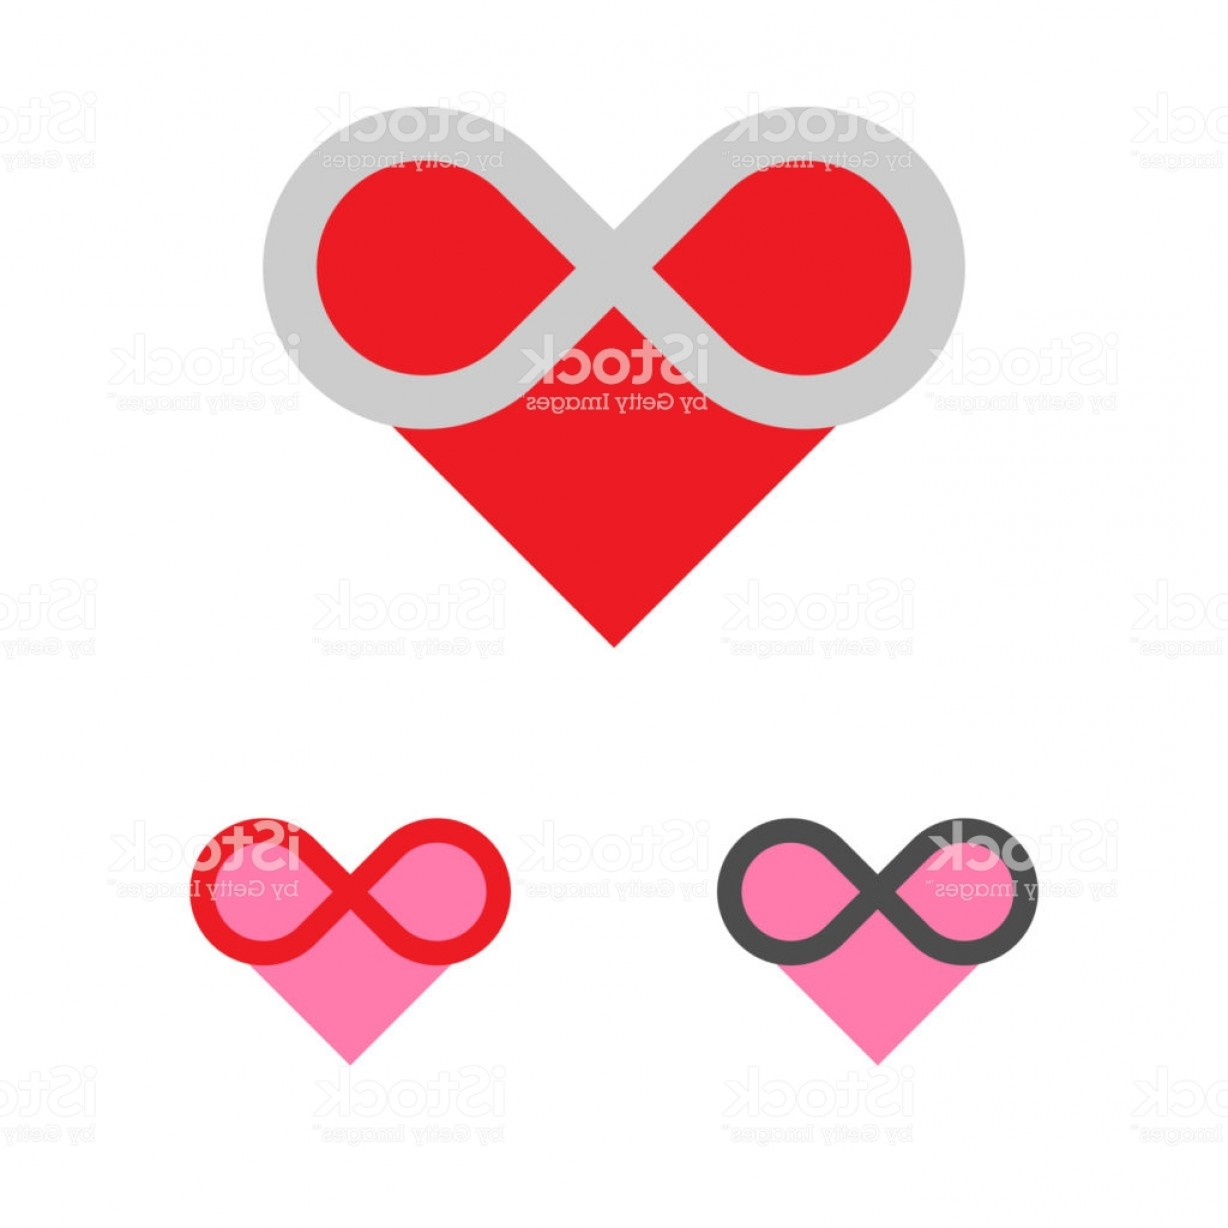 Infinity Grunge Heart Vector: Forever Love Logo Template Heart Infinity Logotype Charity Or Gm